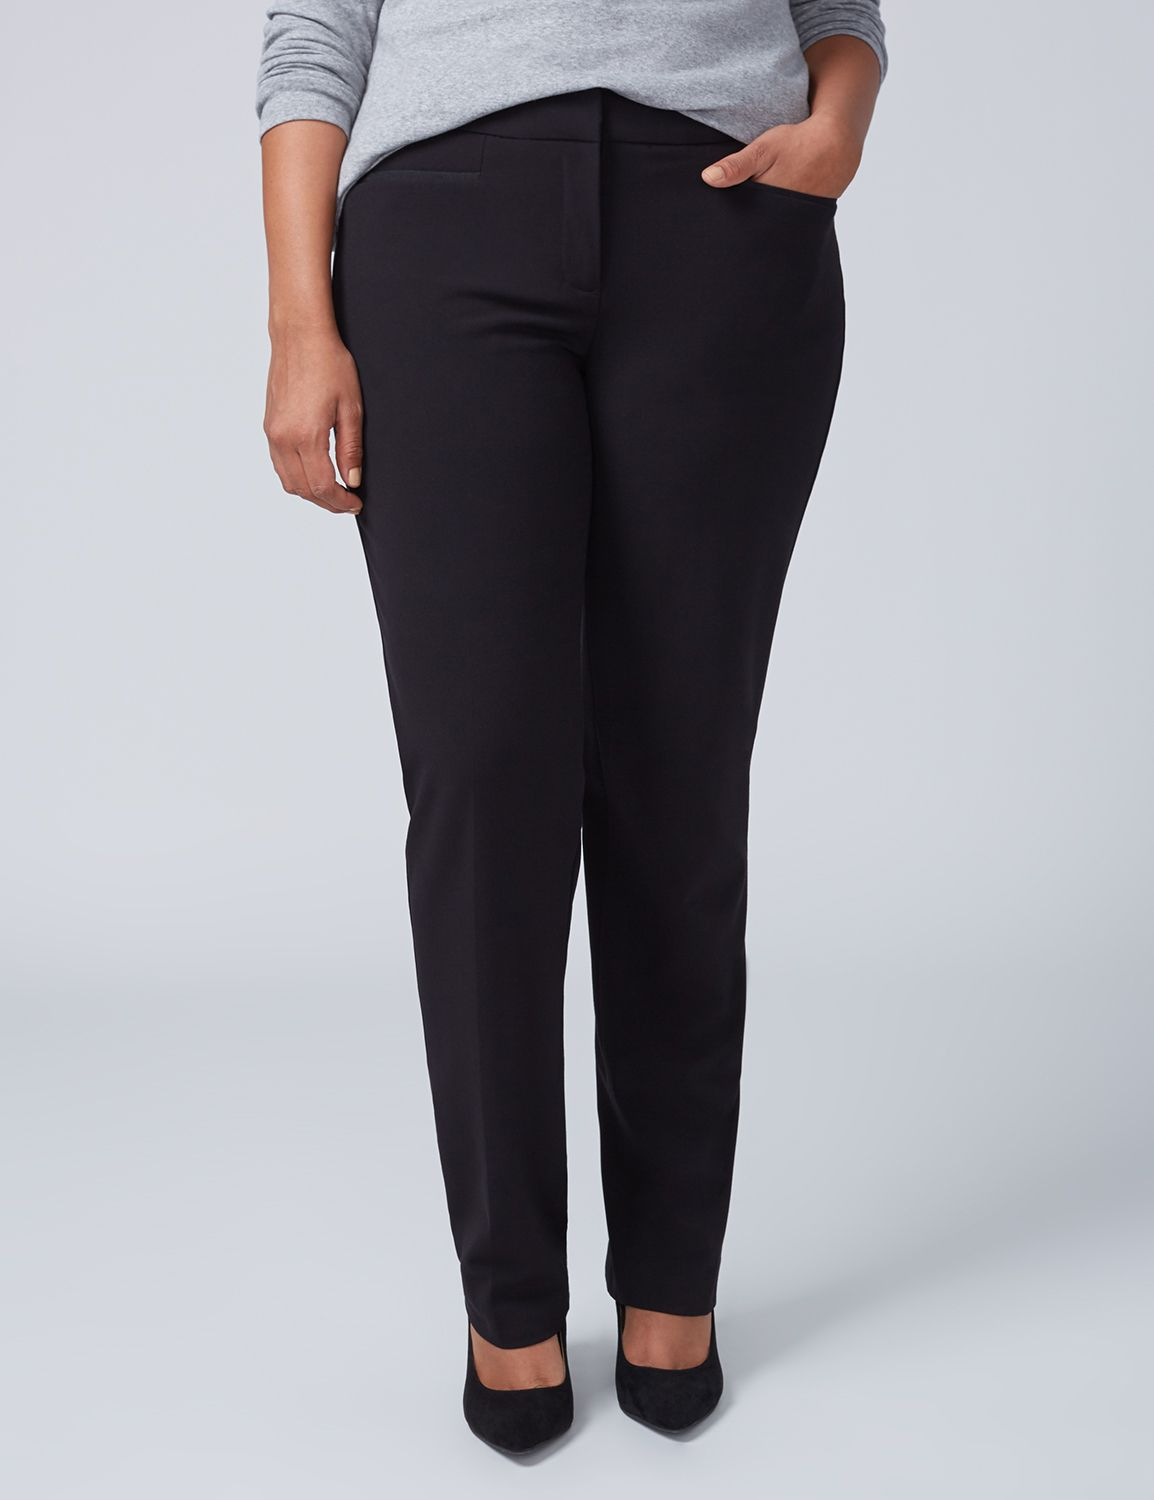 Lane Bryant Womens Sophie Tailored Stretch Straight Leg Pant With T3 Technology 20 Black